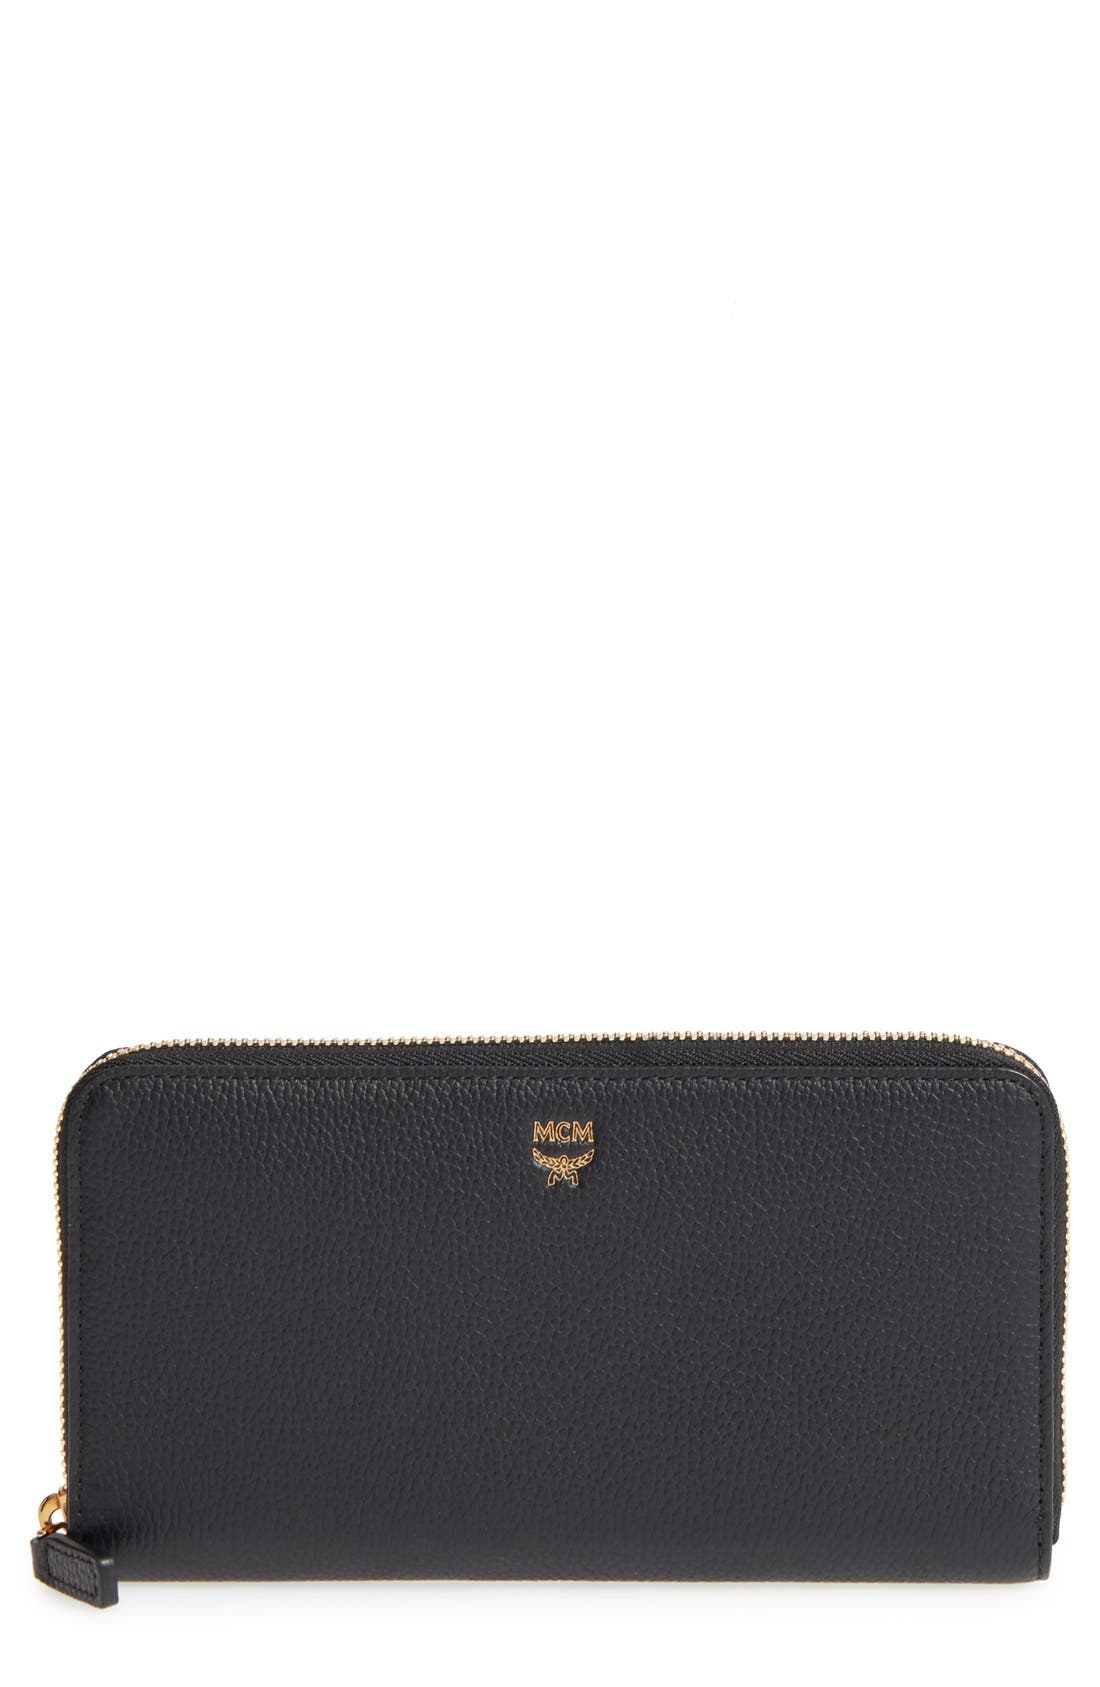 Milla Leather Zip Around Wallet,                             Main thumbnail 1, color,